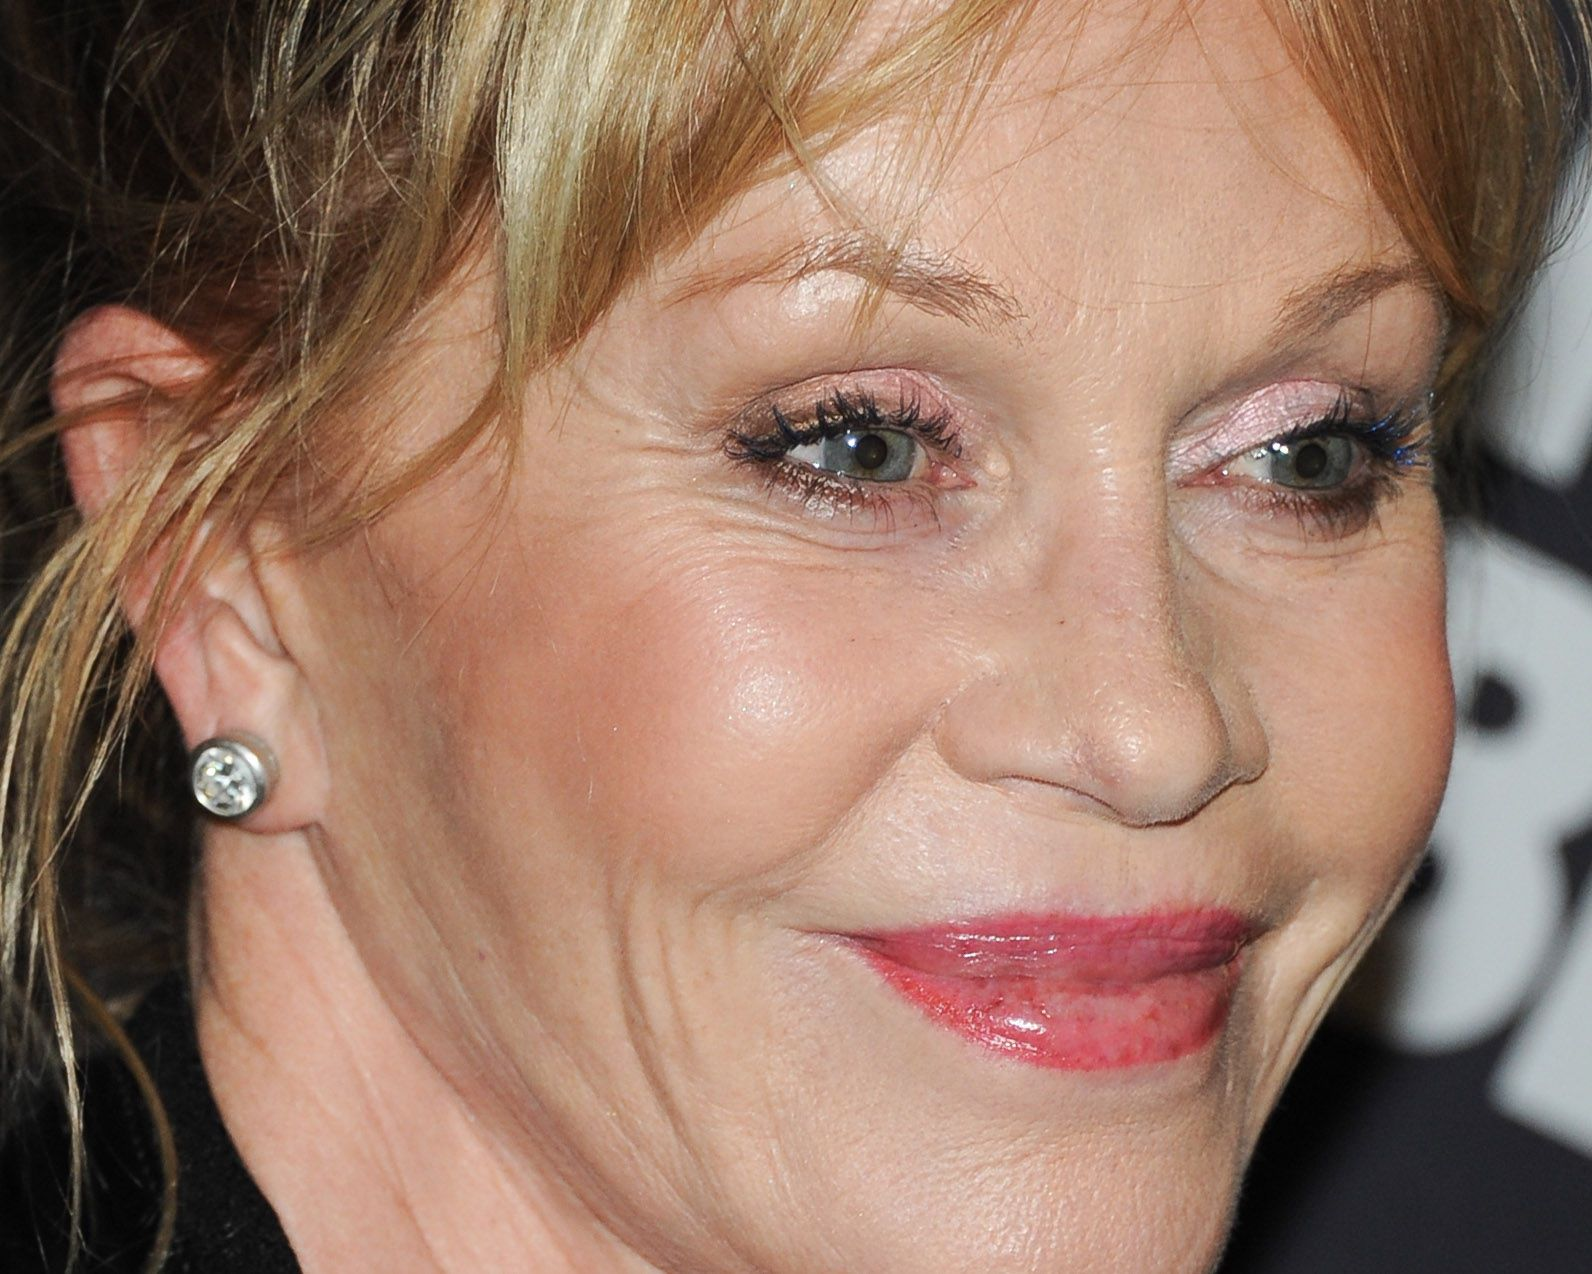 Hacked Melanie Griffith nudes (35 photo), Ass, Leaked, Boobs, braless 2019